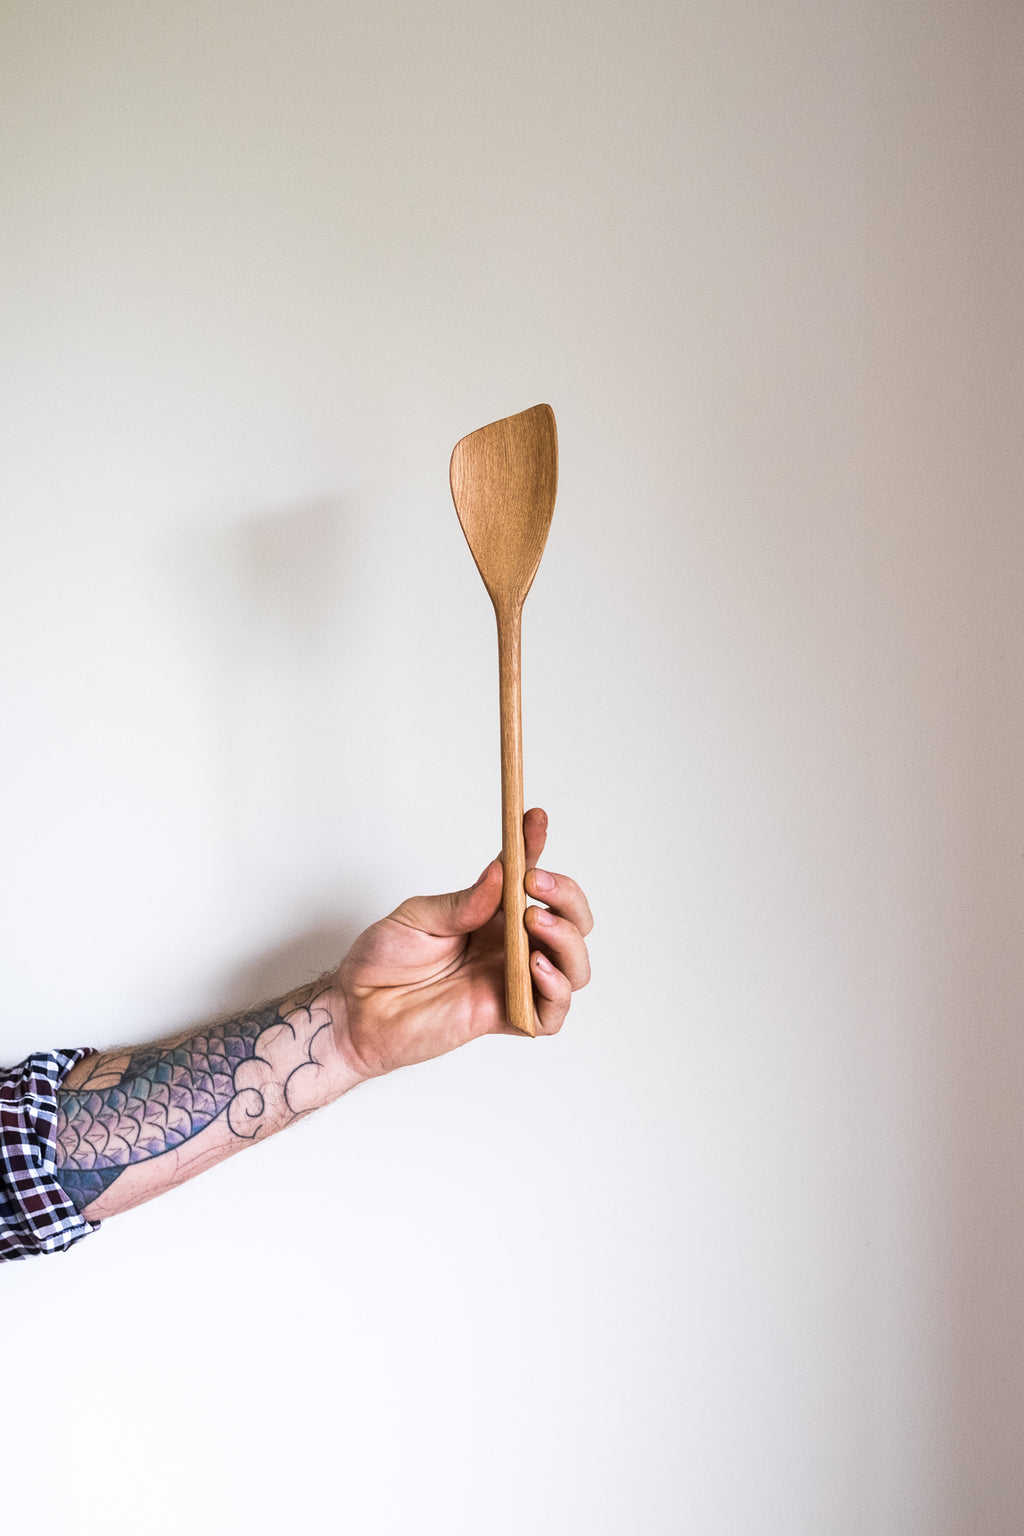 Reclaimed Rimu Wood Spoon Spatula Handmade NZ Slotted Spoon the Zephyr Co